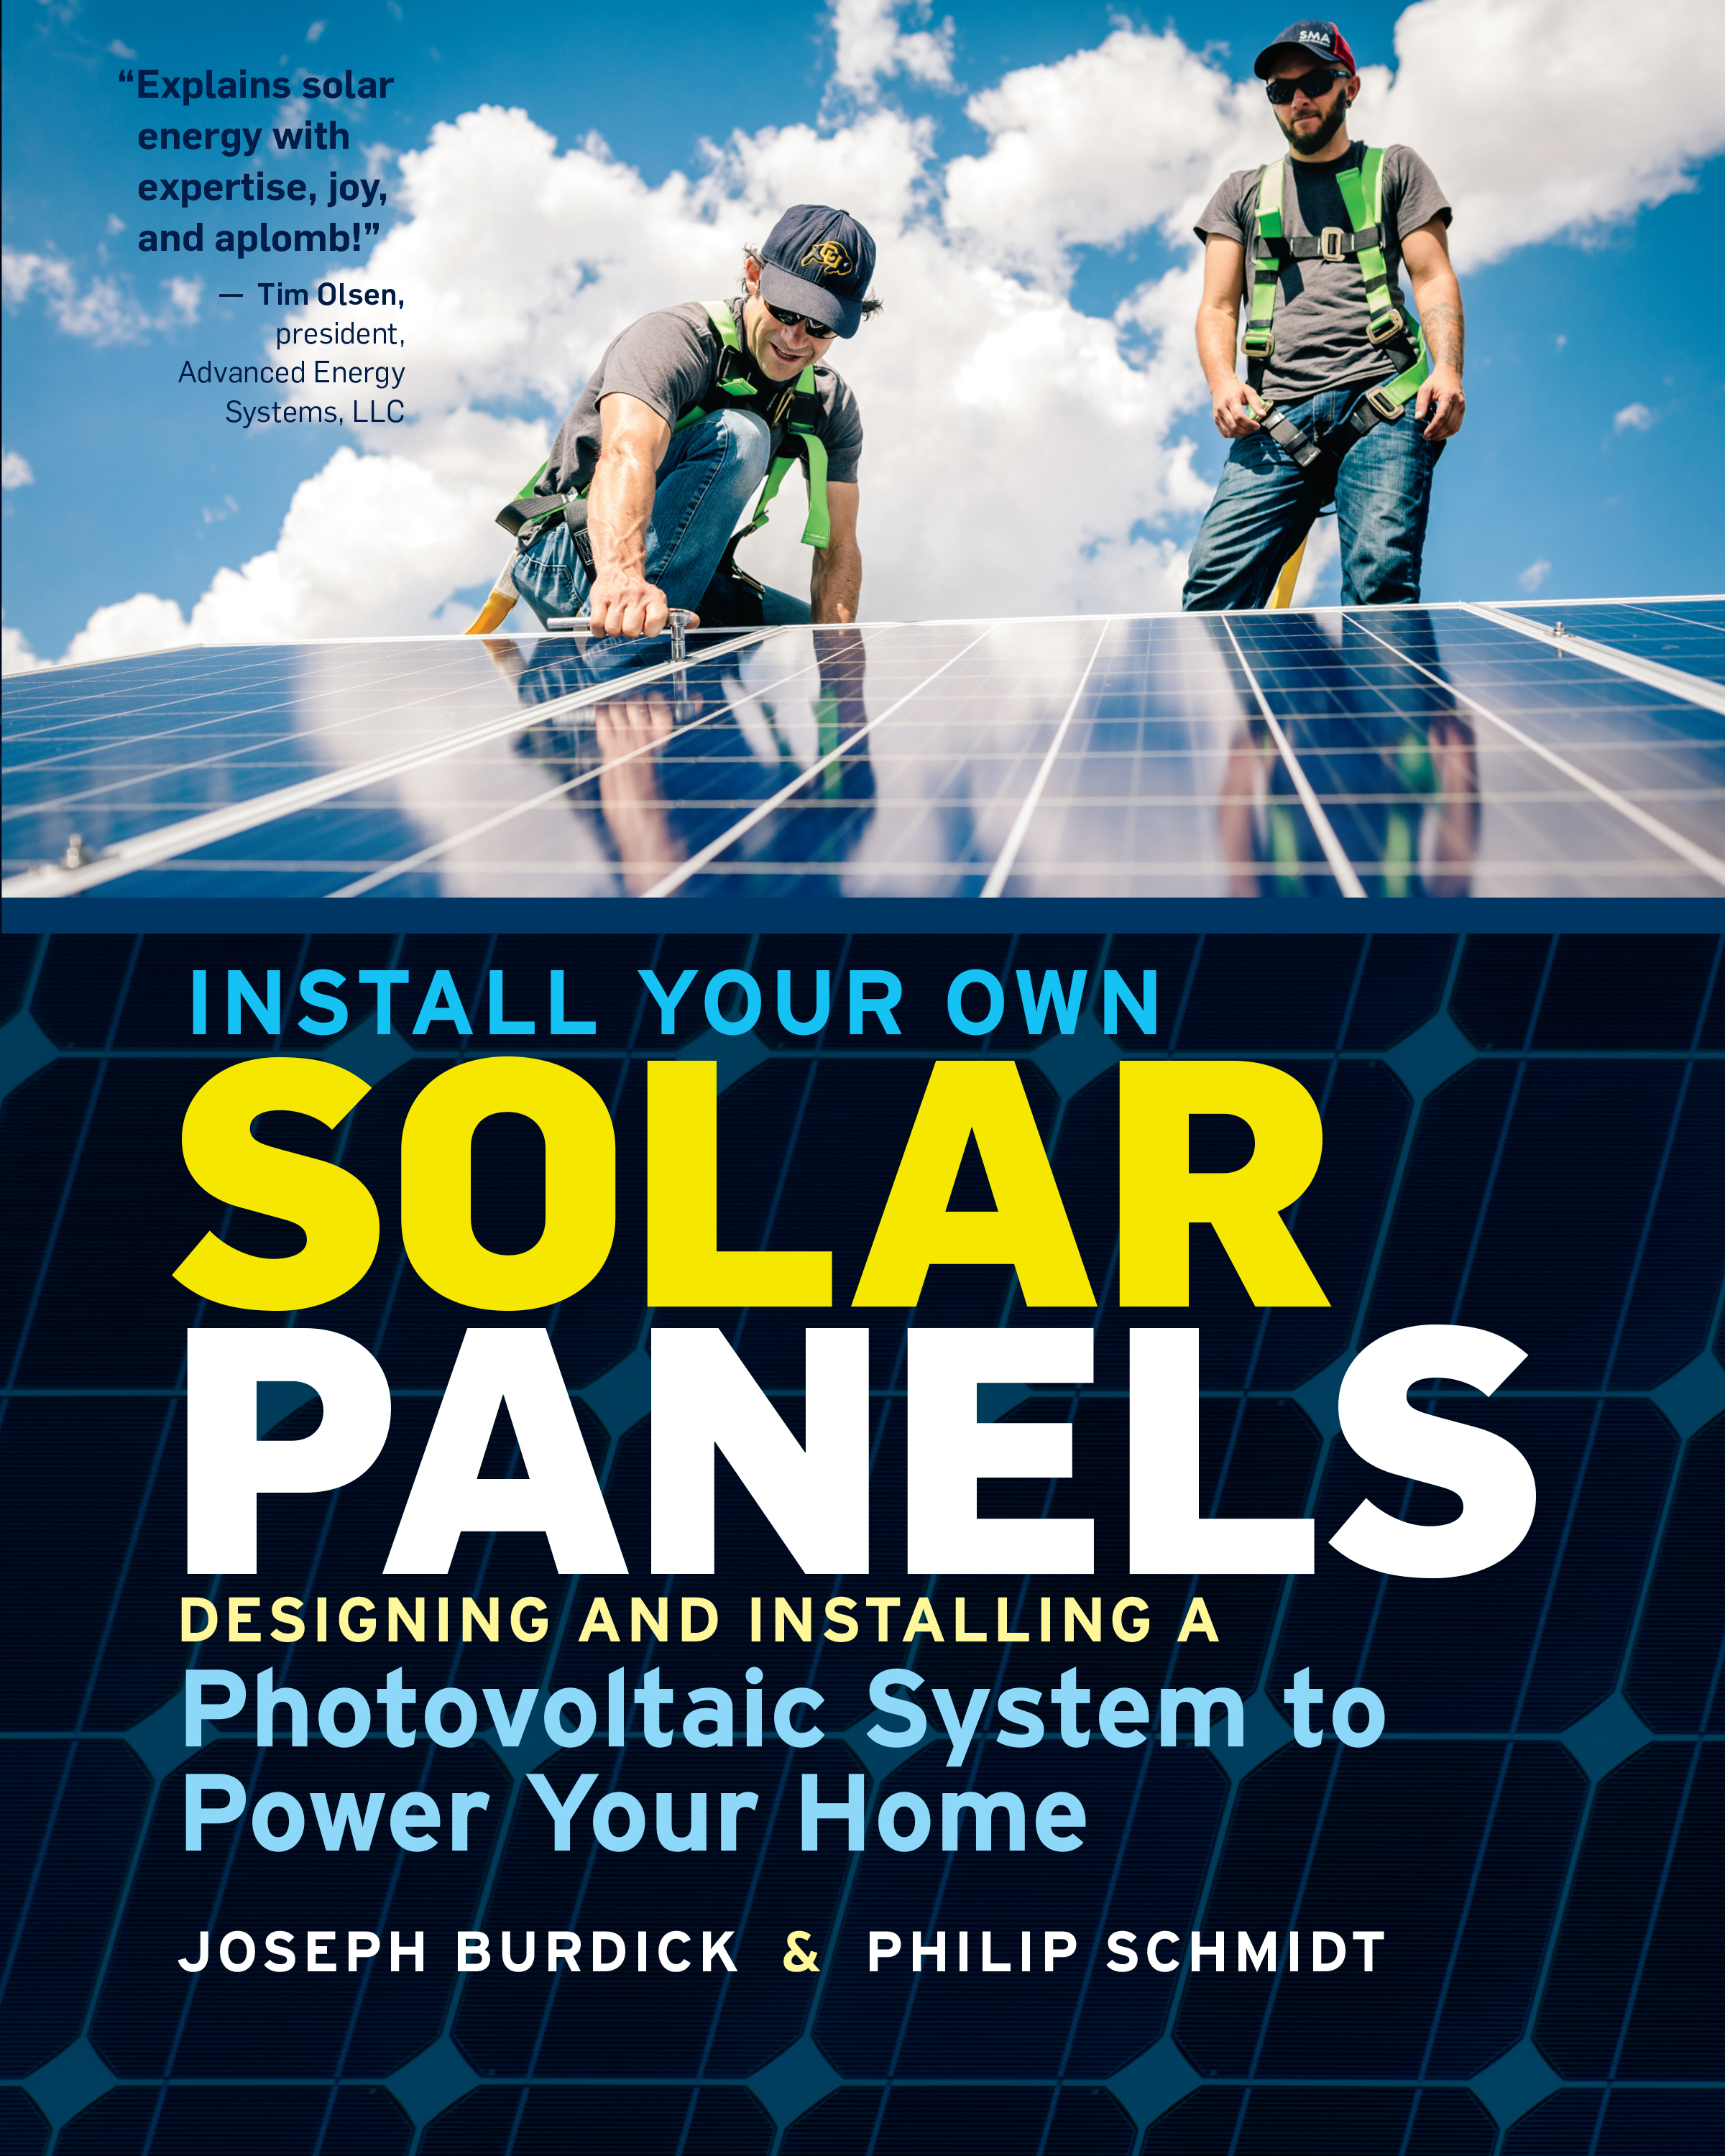 Install Your Own Solar Panels Designing and Installing a Photovoltaic System to Power Your Home - Joseph Burdick